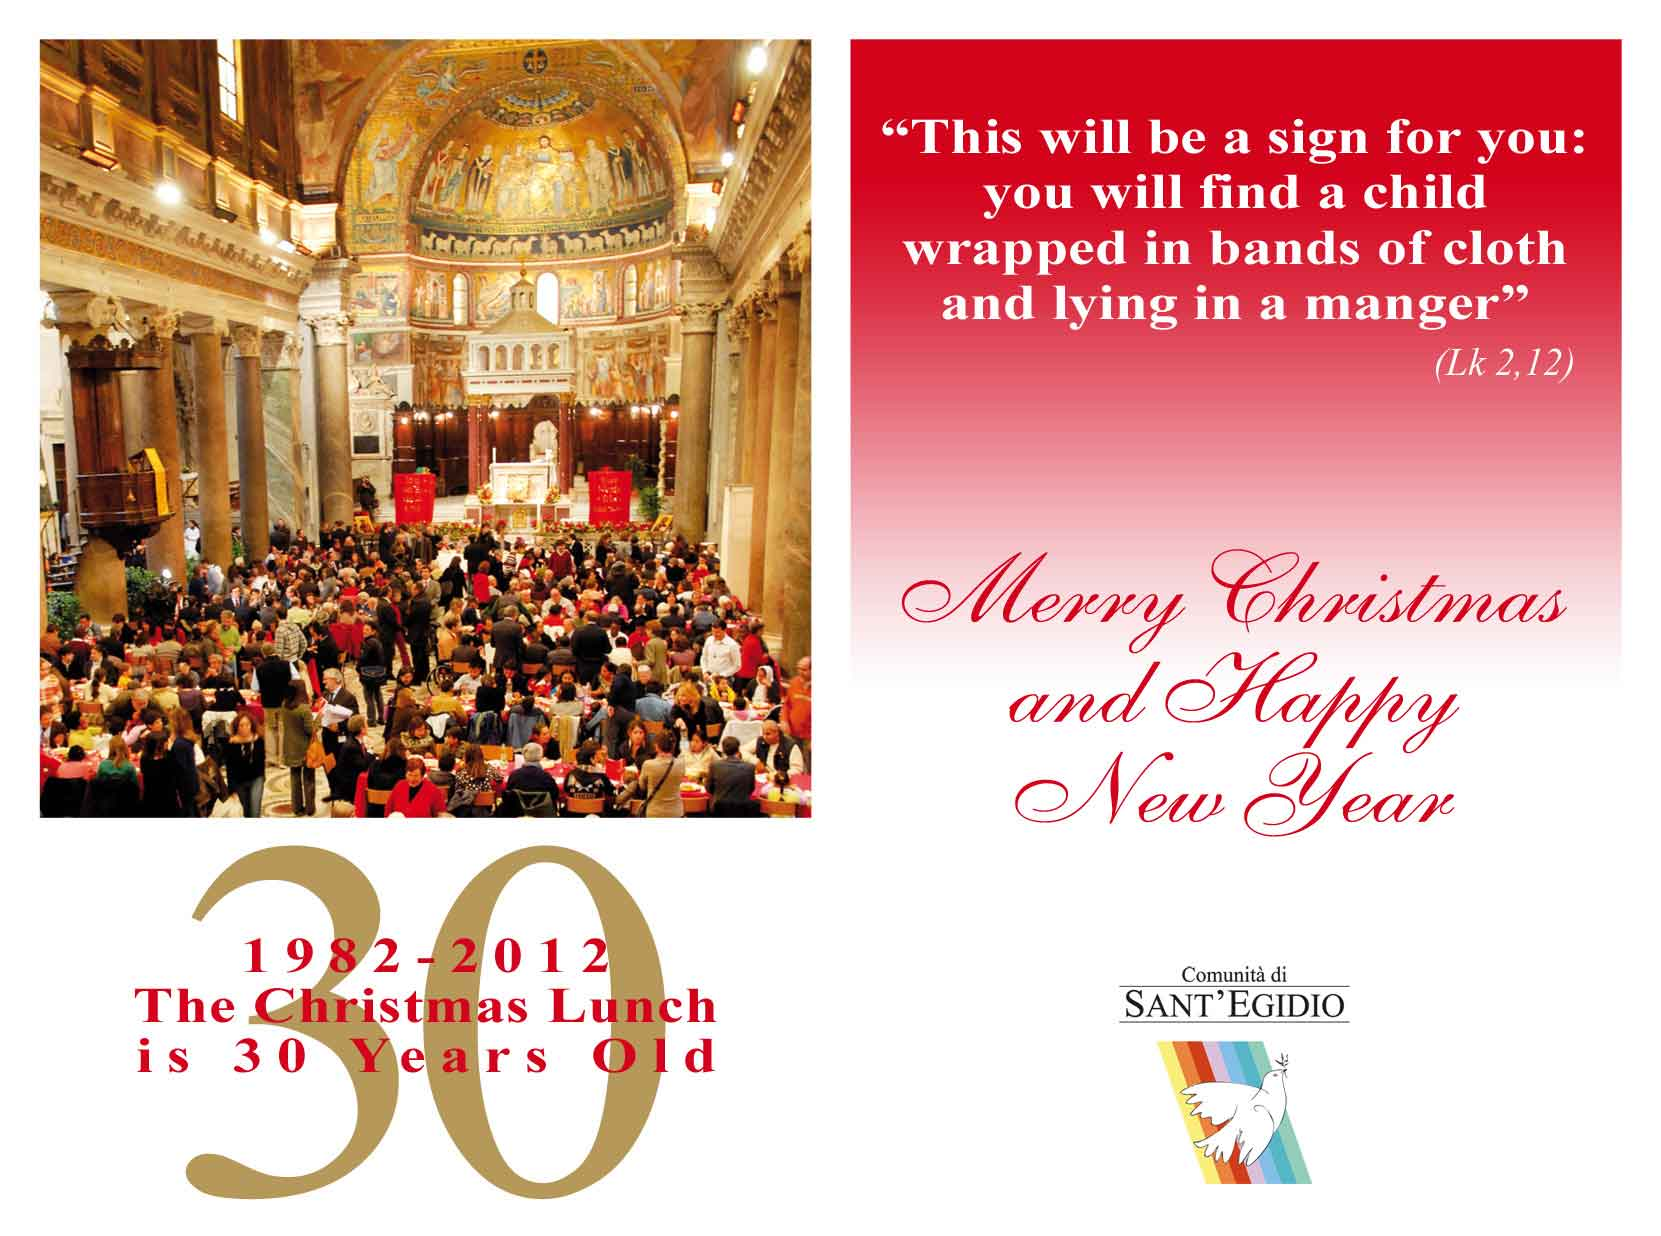 Christmas 2012 - Best wishes from the Community of Sant'Egidio